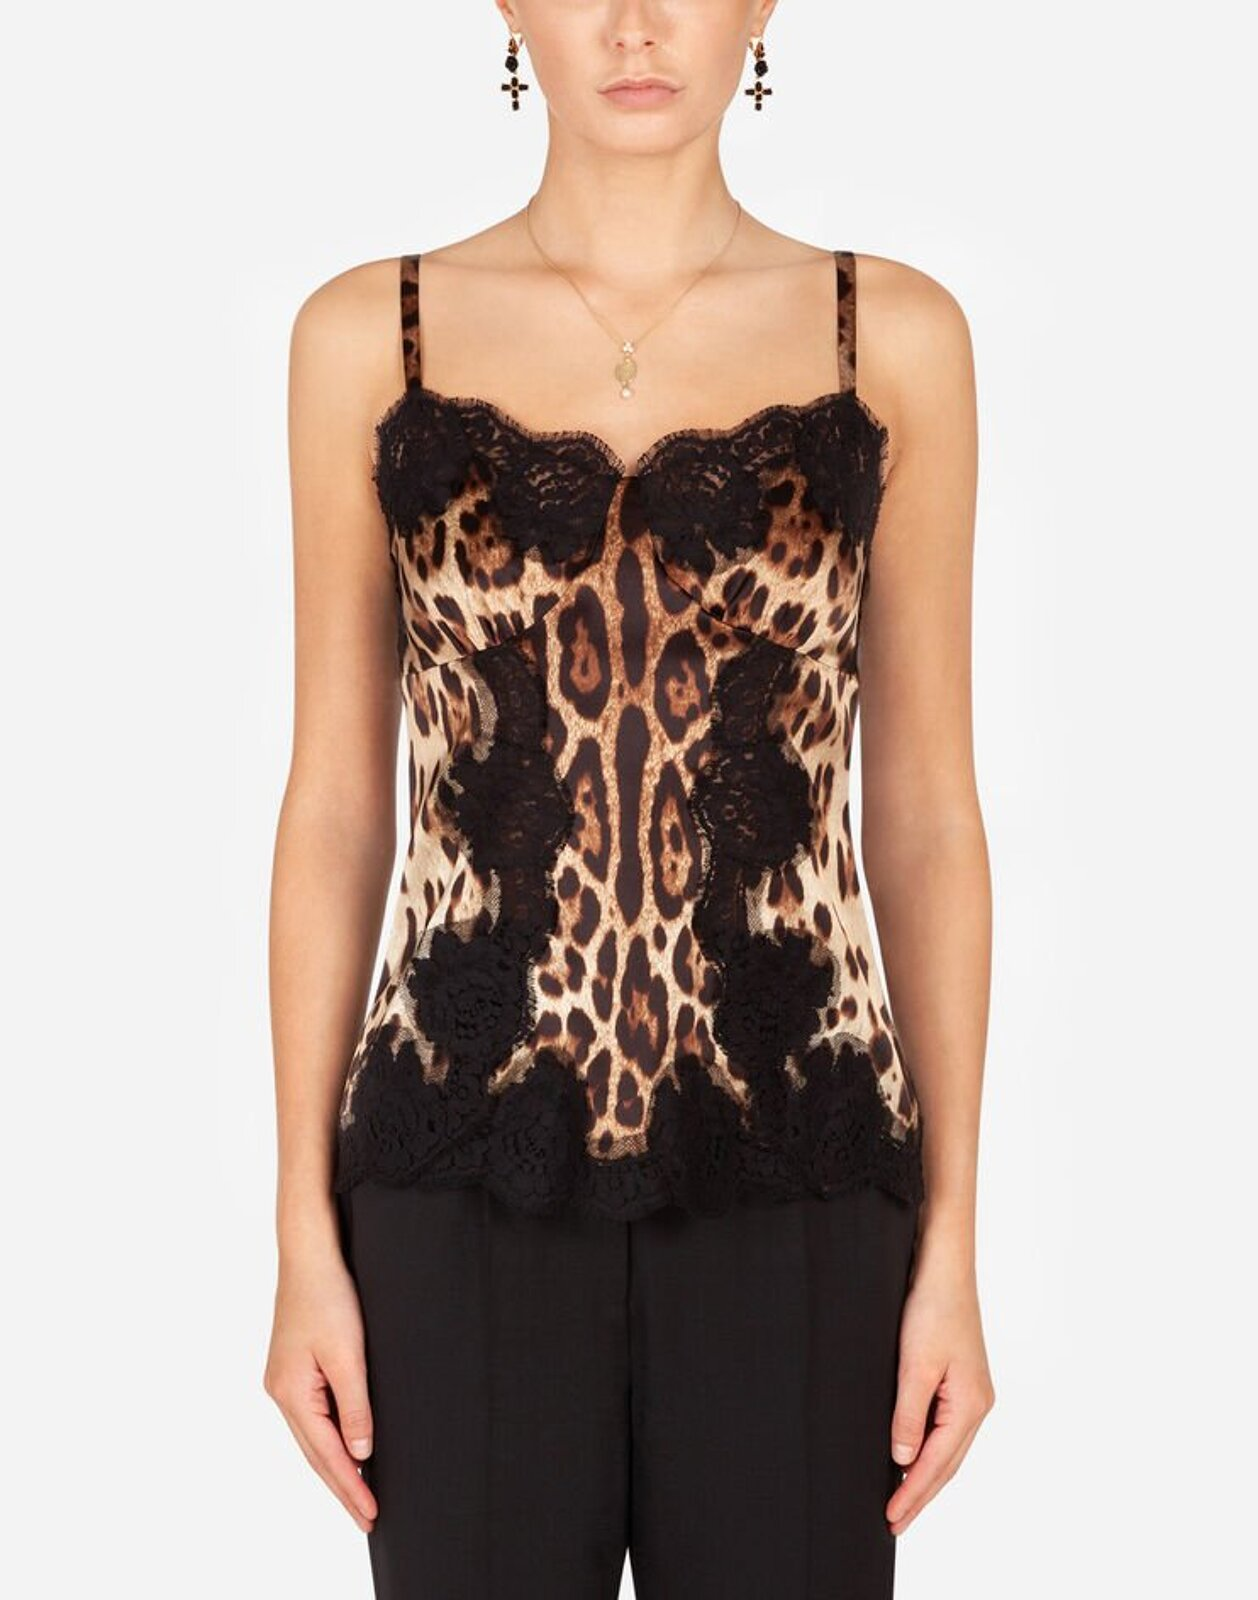 Leopard Print Satin Strappy Top With Lace Details - Dolce & Gabbana